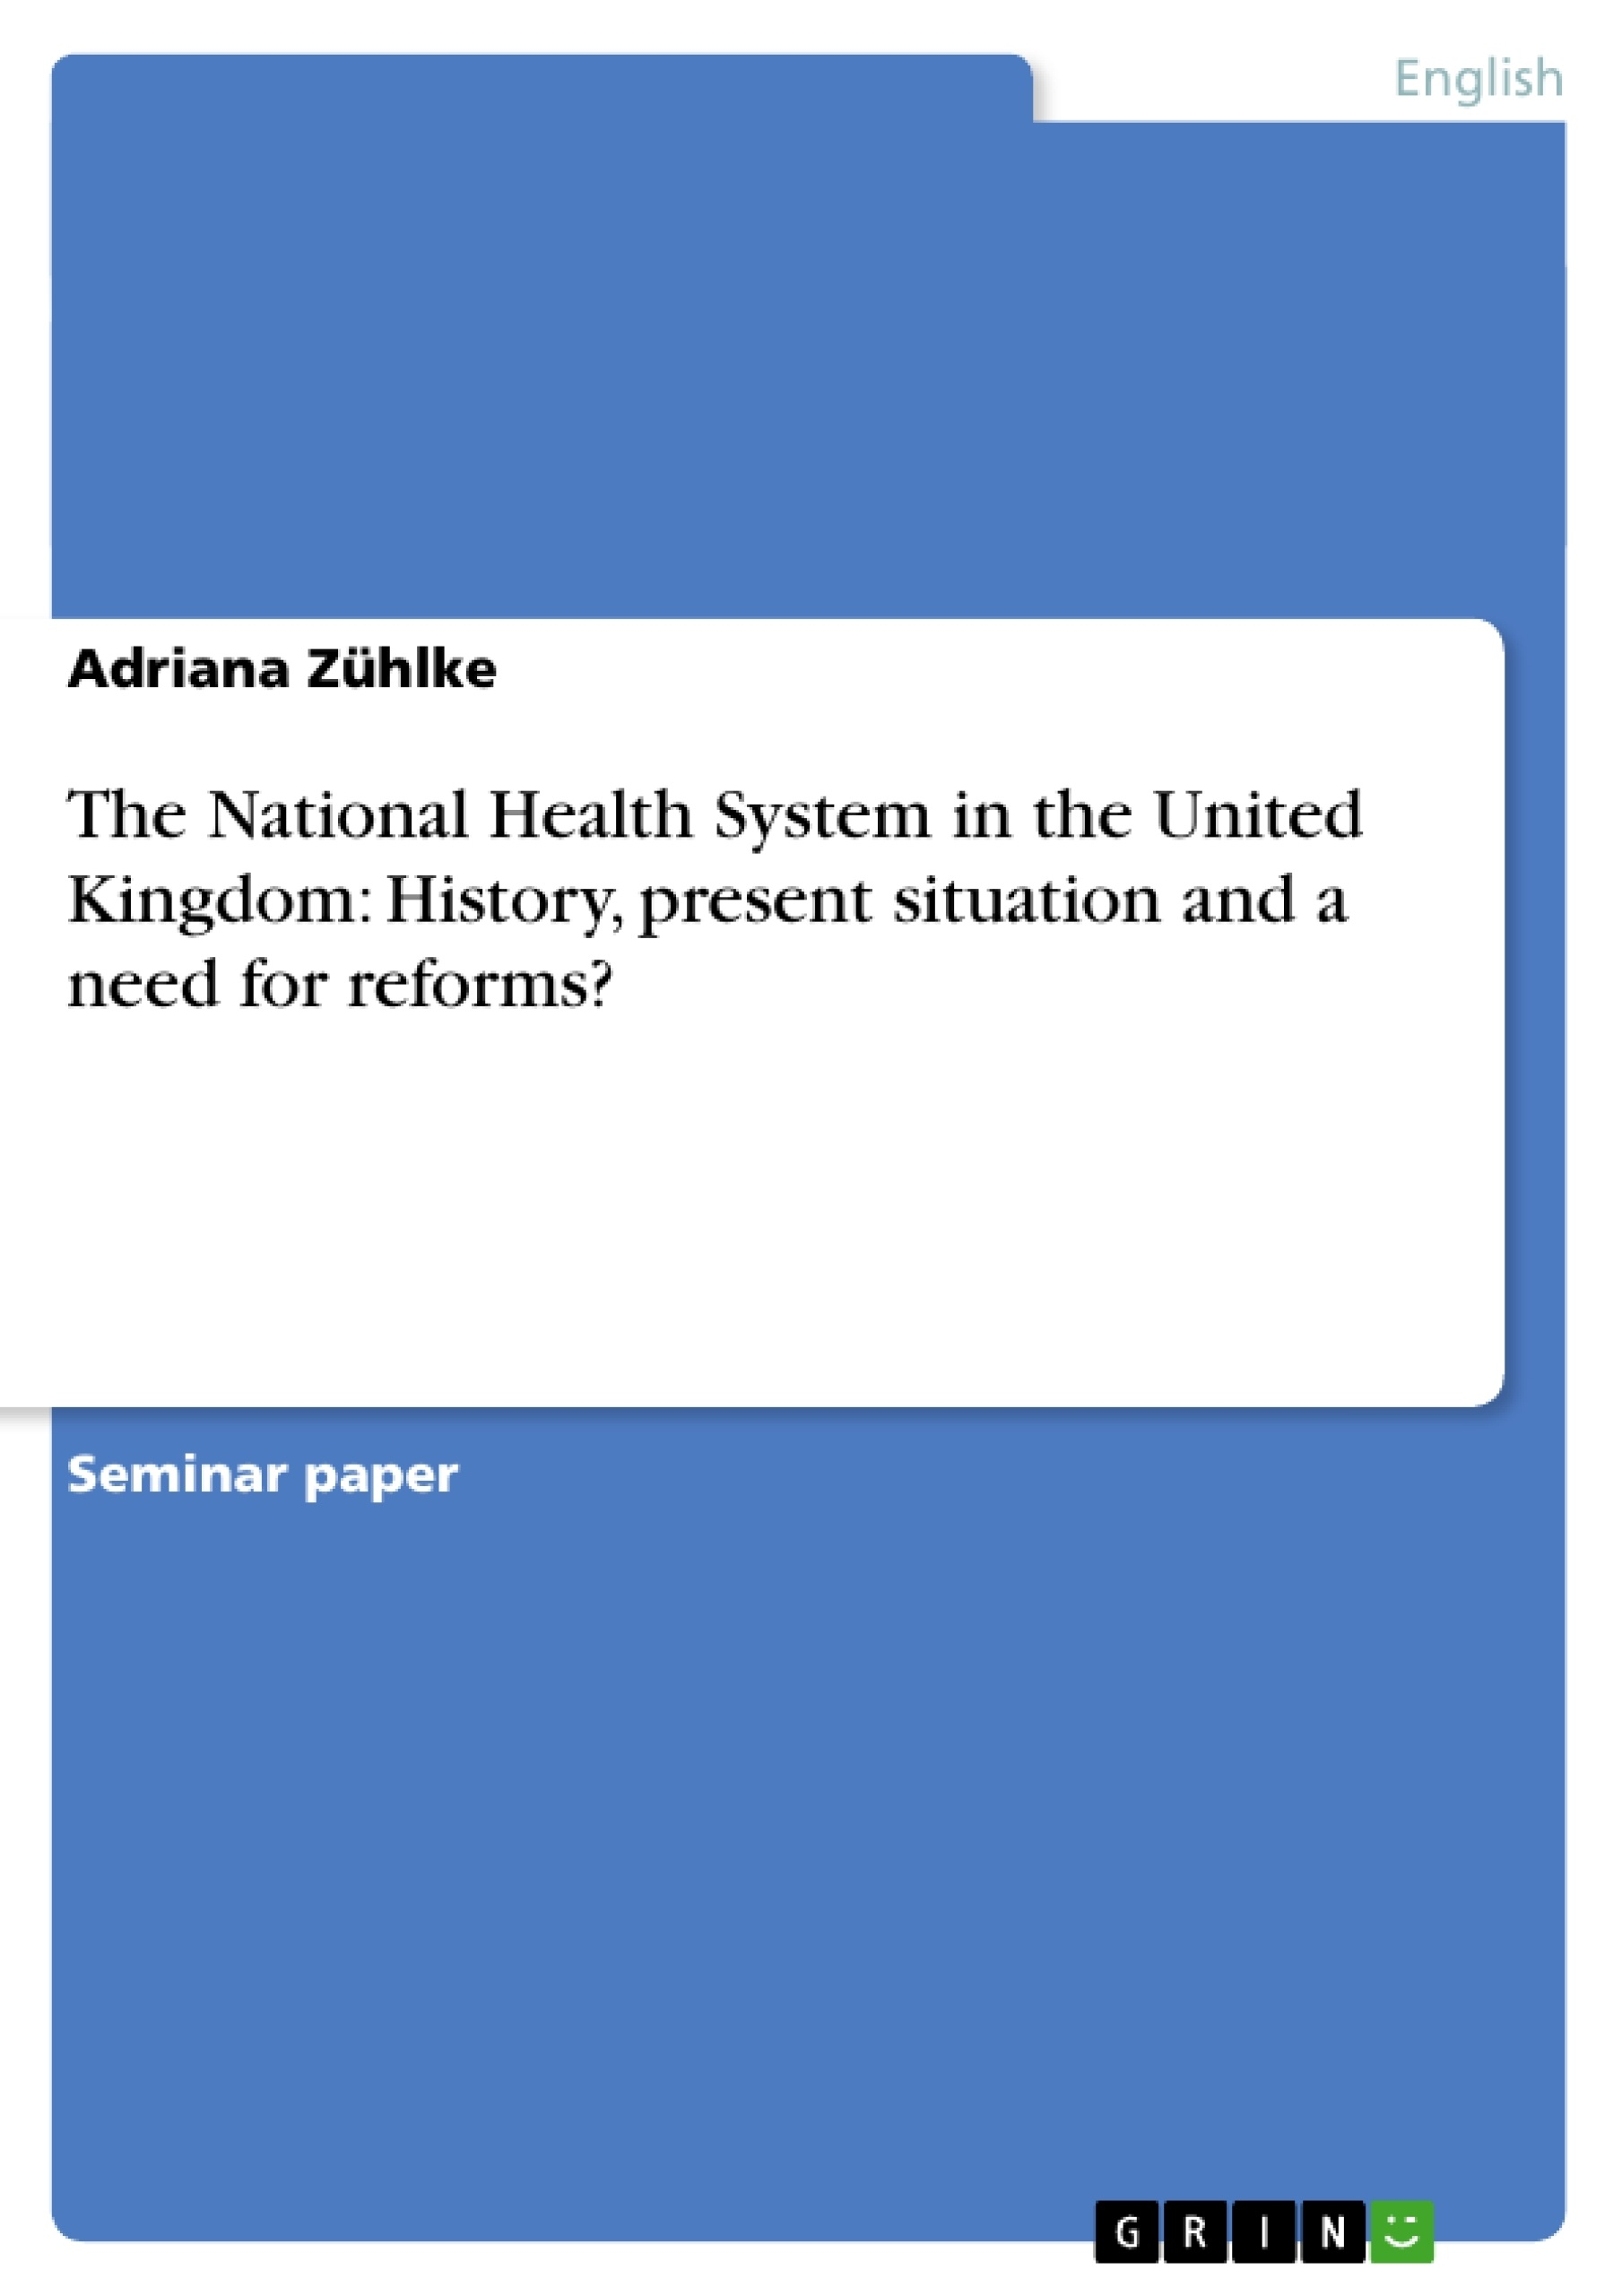 Title: The National Health System in the United Kingdom: History, present situation and a need for reforms?